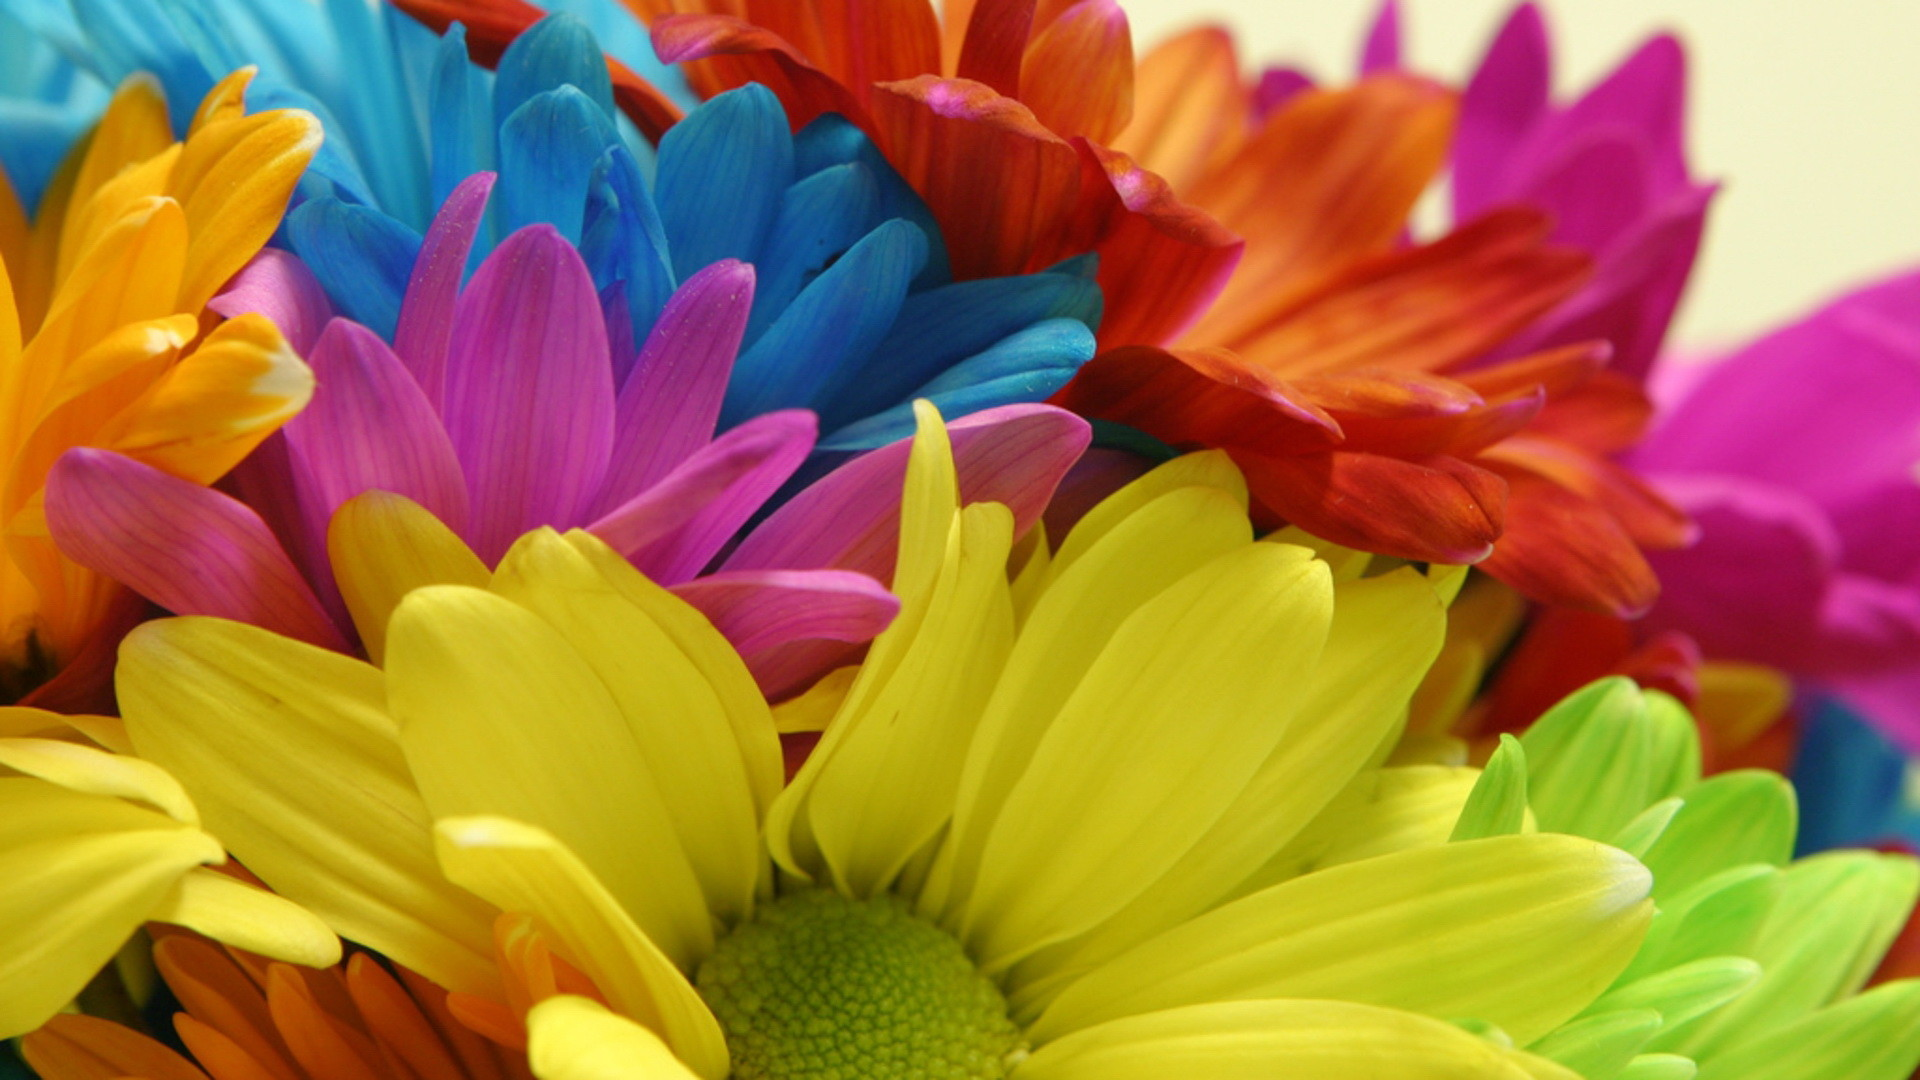 1920x1080 Rainbow daiseys. colorful+flowers+pictures | Colorful Daisy Flowers Send It  To Your